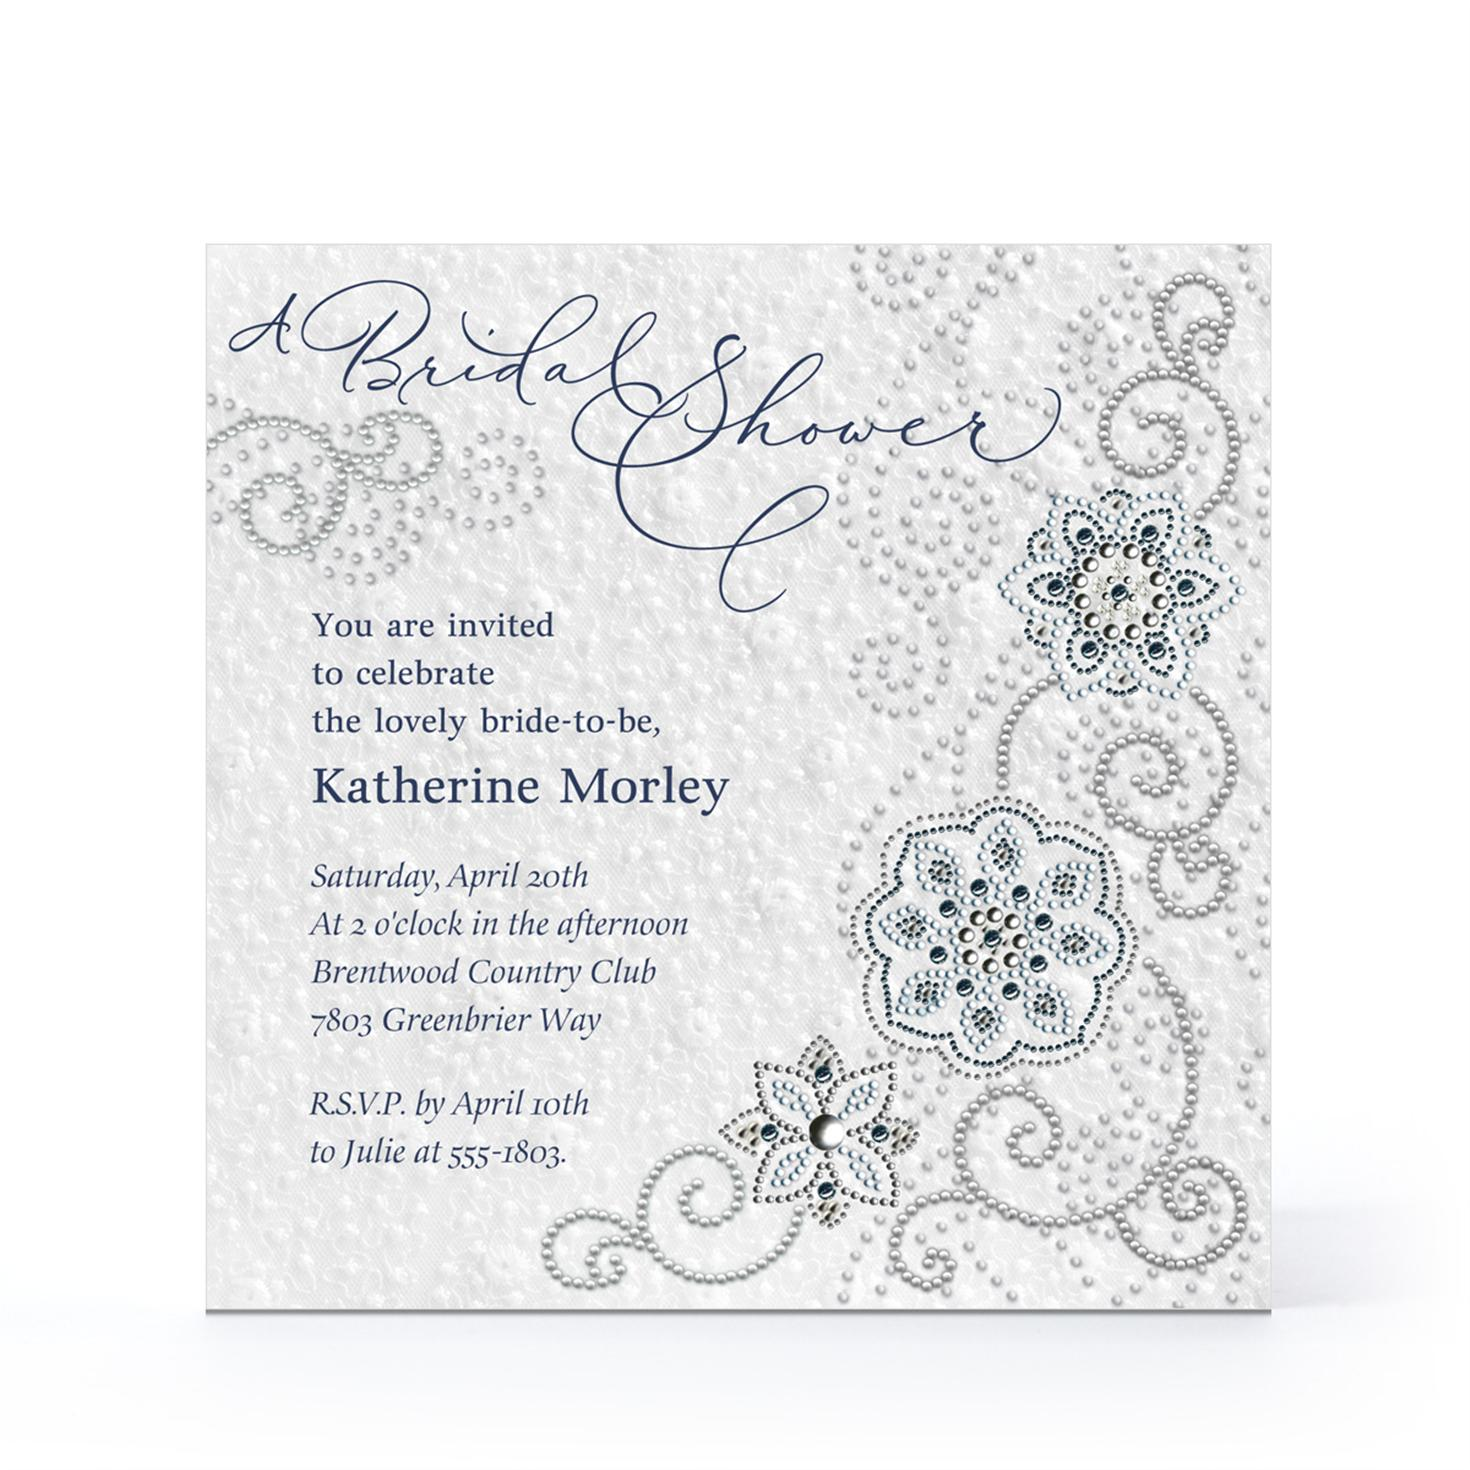 Hallmark Invitations Bridal Shower